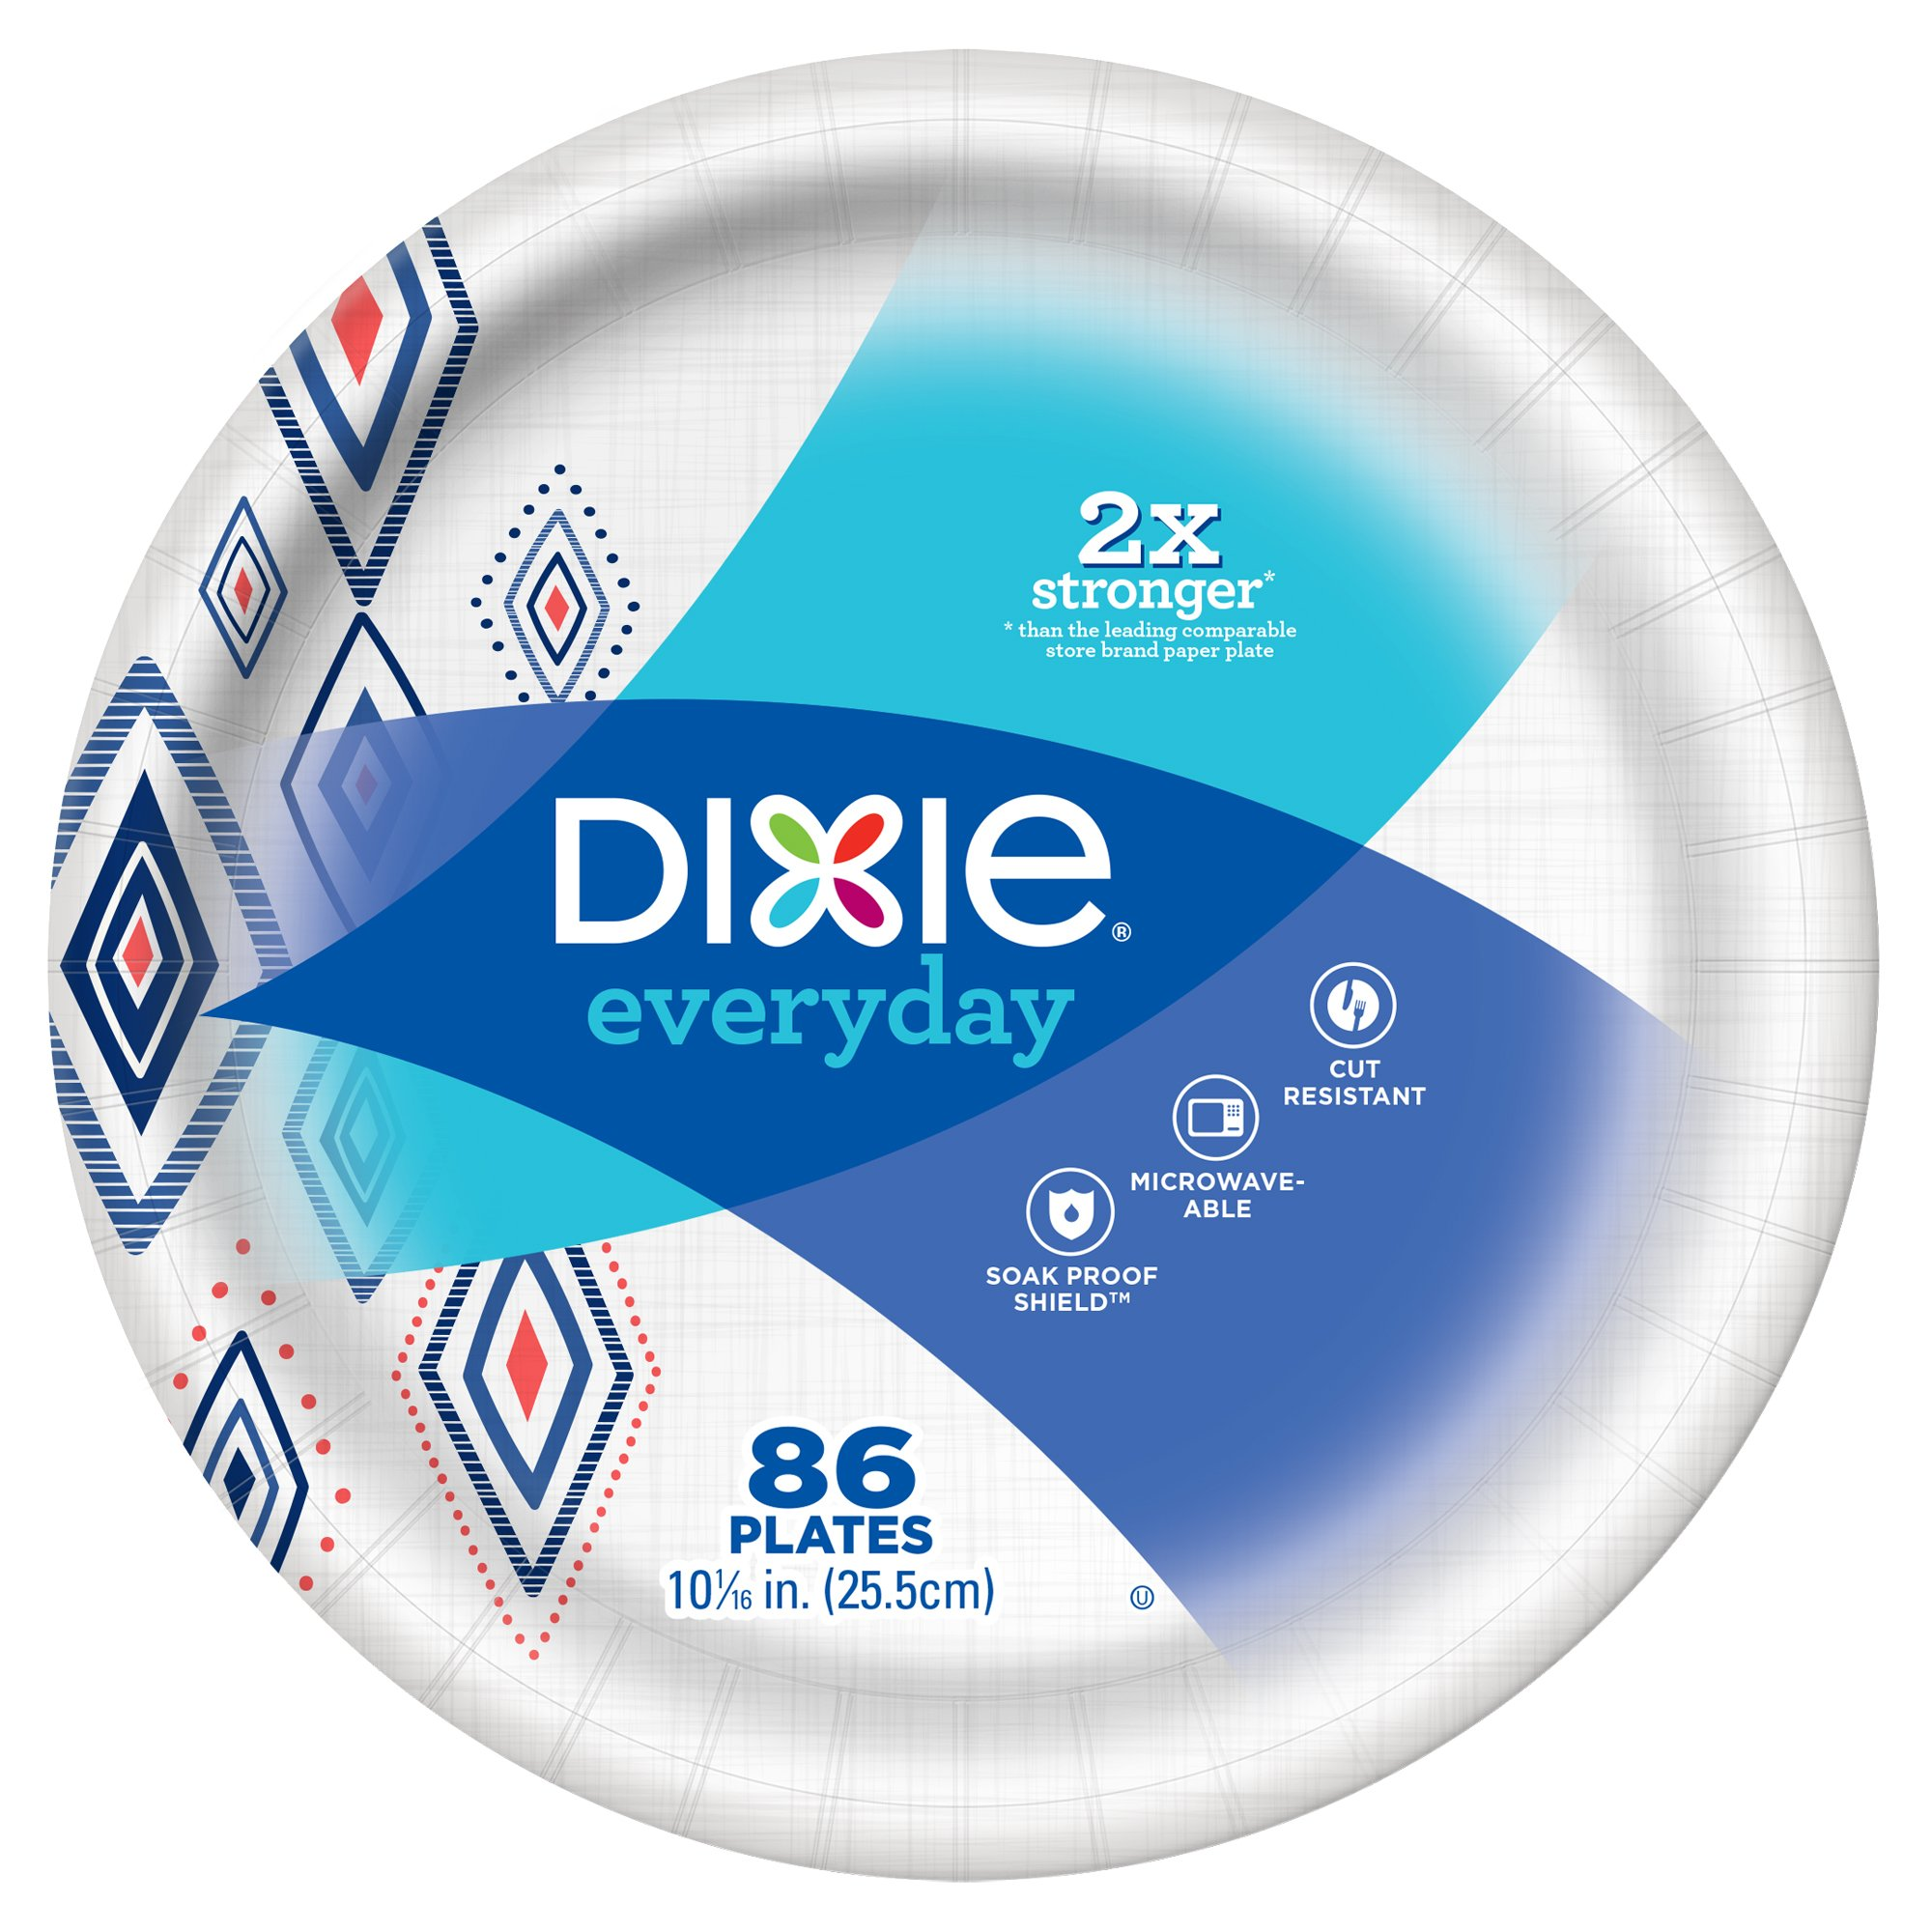 Dixie Everyday Paper Plates, 10 1/16'', 86 Count, Amazon Exclusive Design, Dinner Size Printed Disposable Plates by Dixie